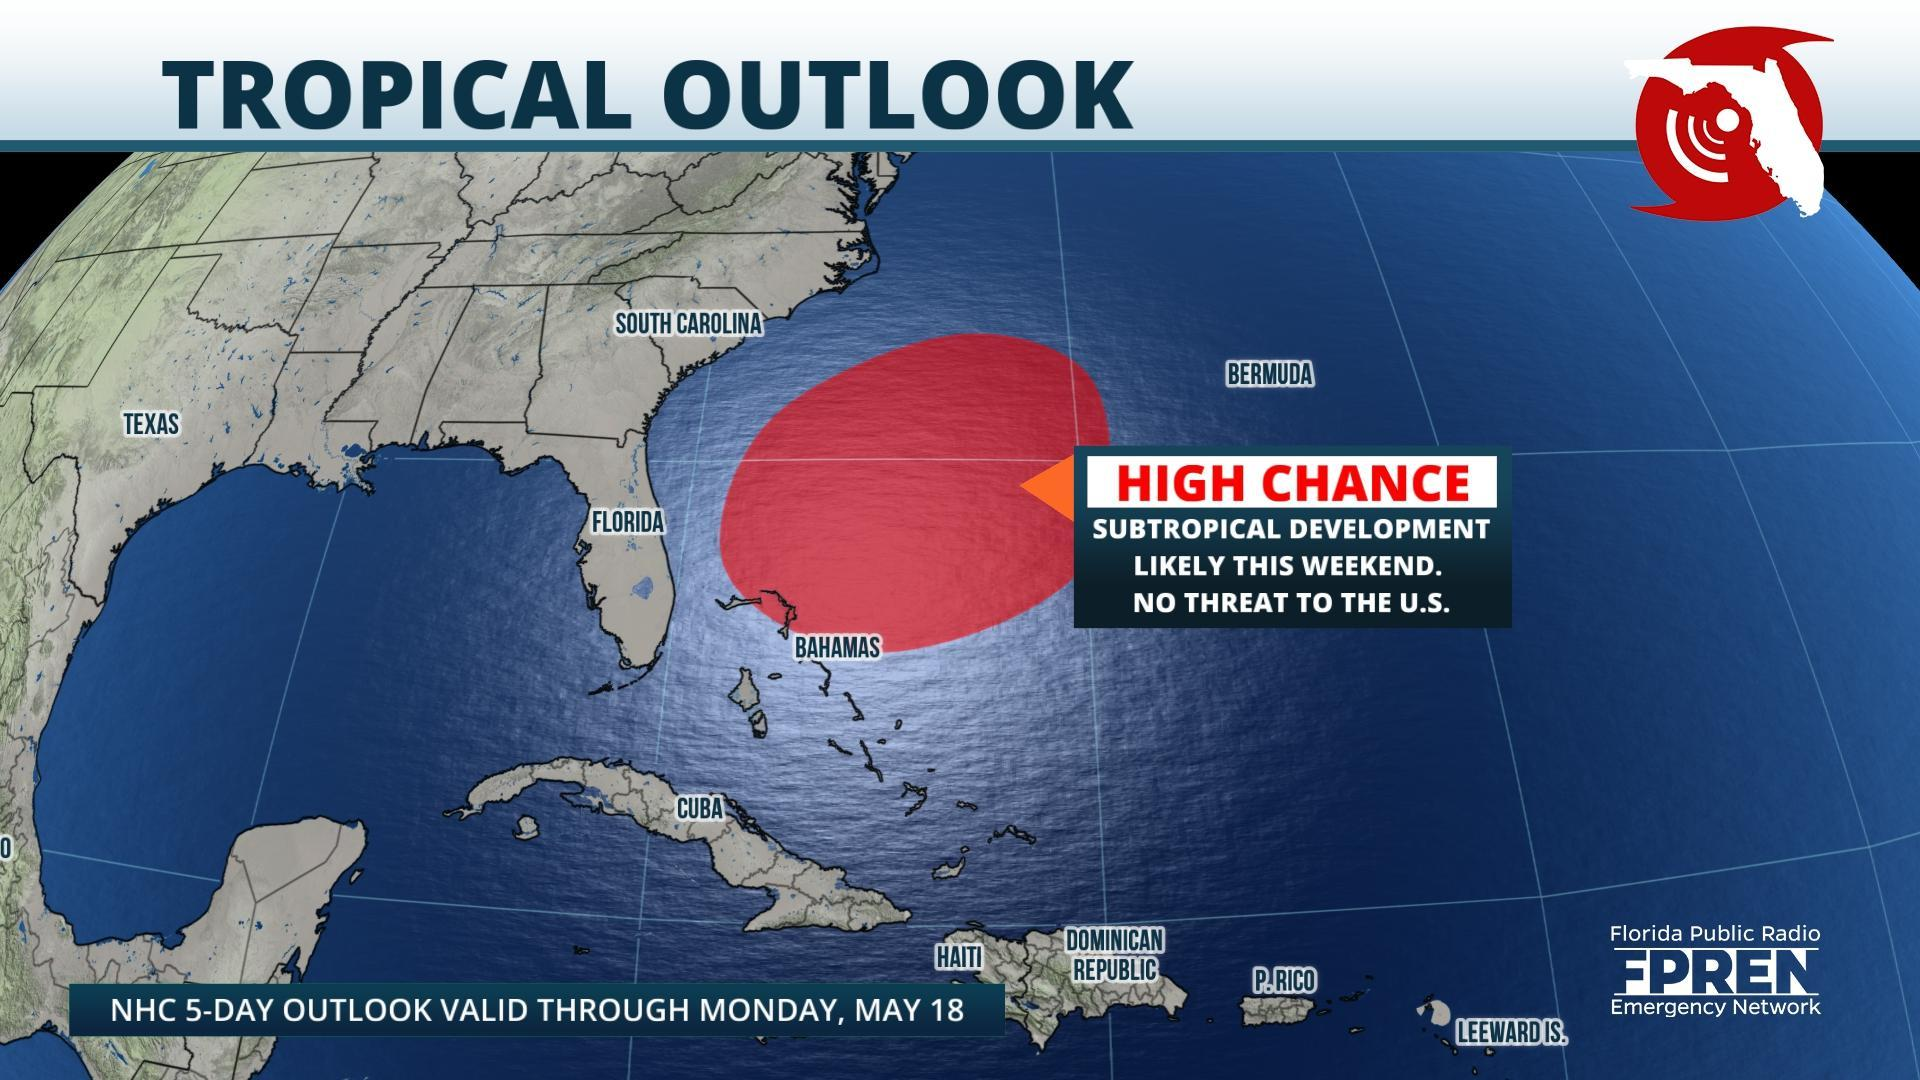 The First Tropical Storm Of The Season Could Hit Florida This Weekend